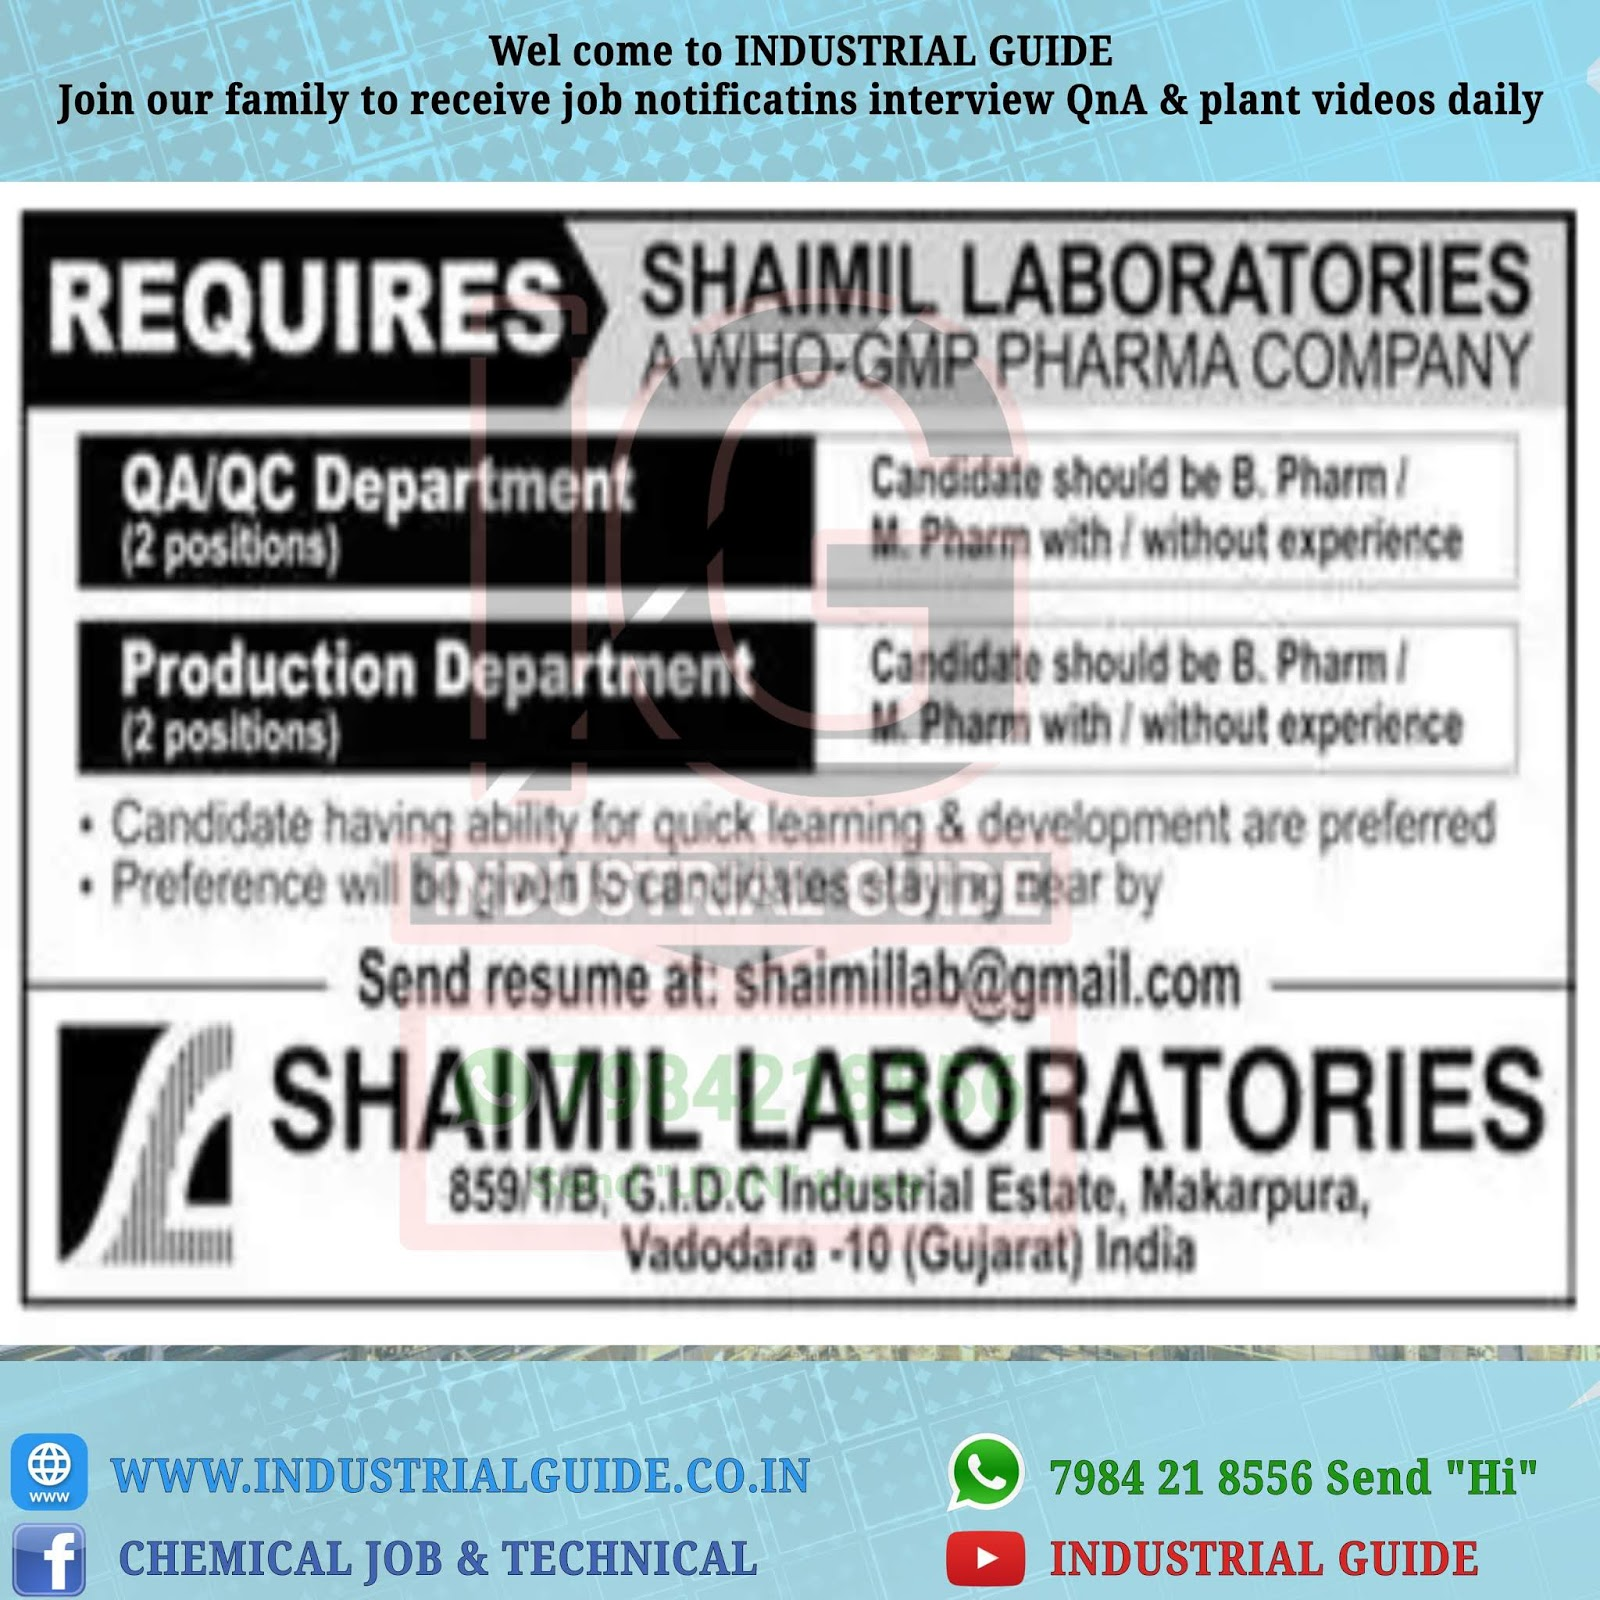 Industrial guide: Shaimil laboratories urgently required for